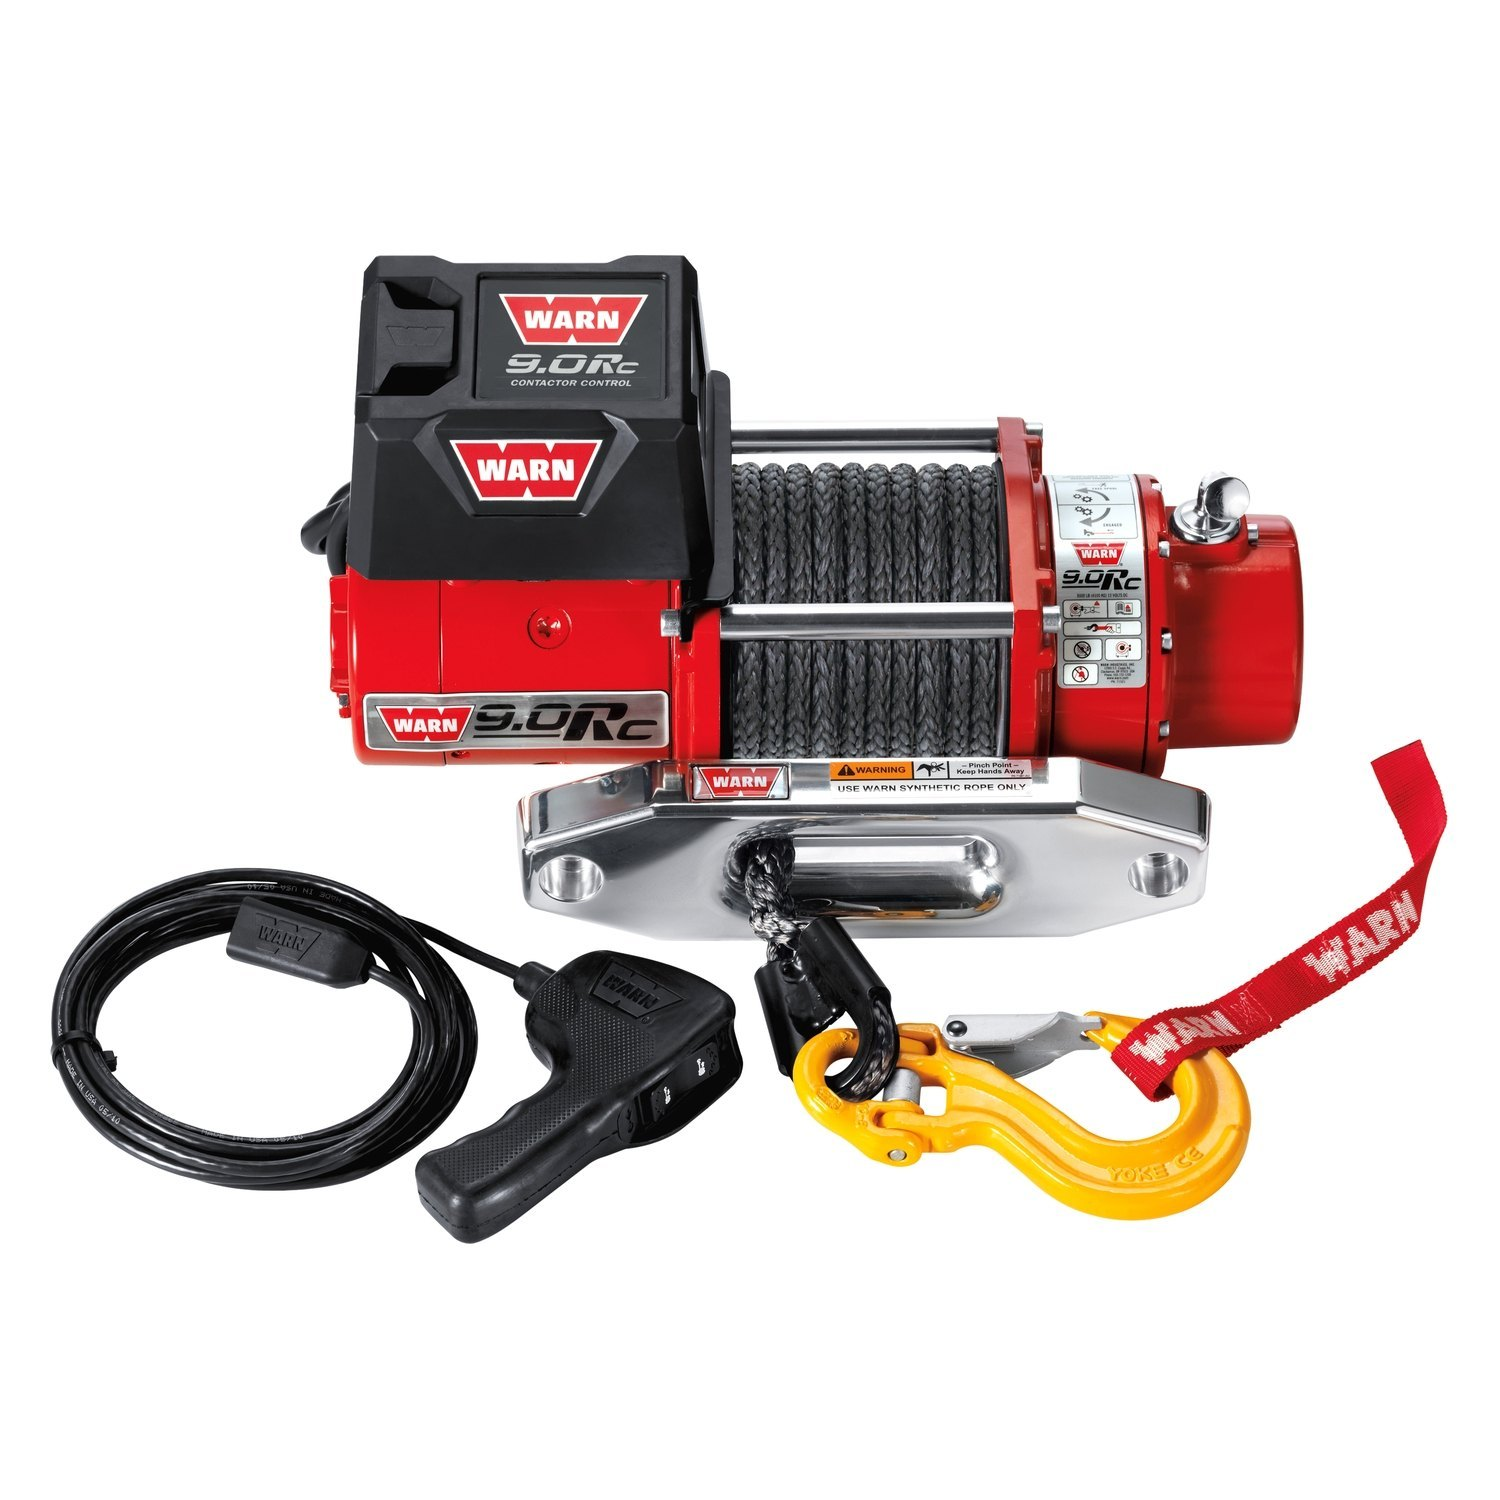 WARN® 71550 - 9,000 lbs 9.0Rc Series Rock Crawling Electric Winch With Synthetic Spydura™ Rope